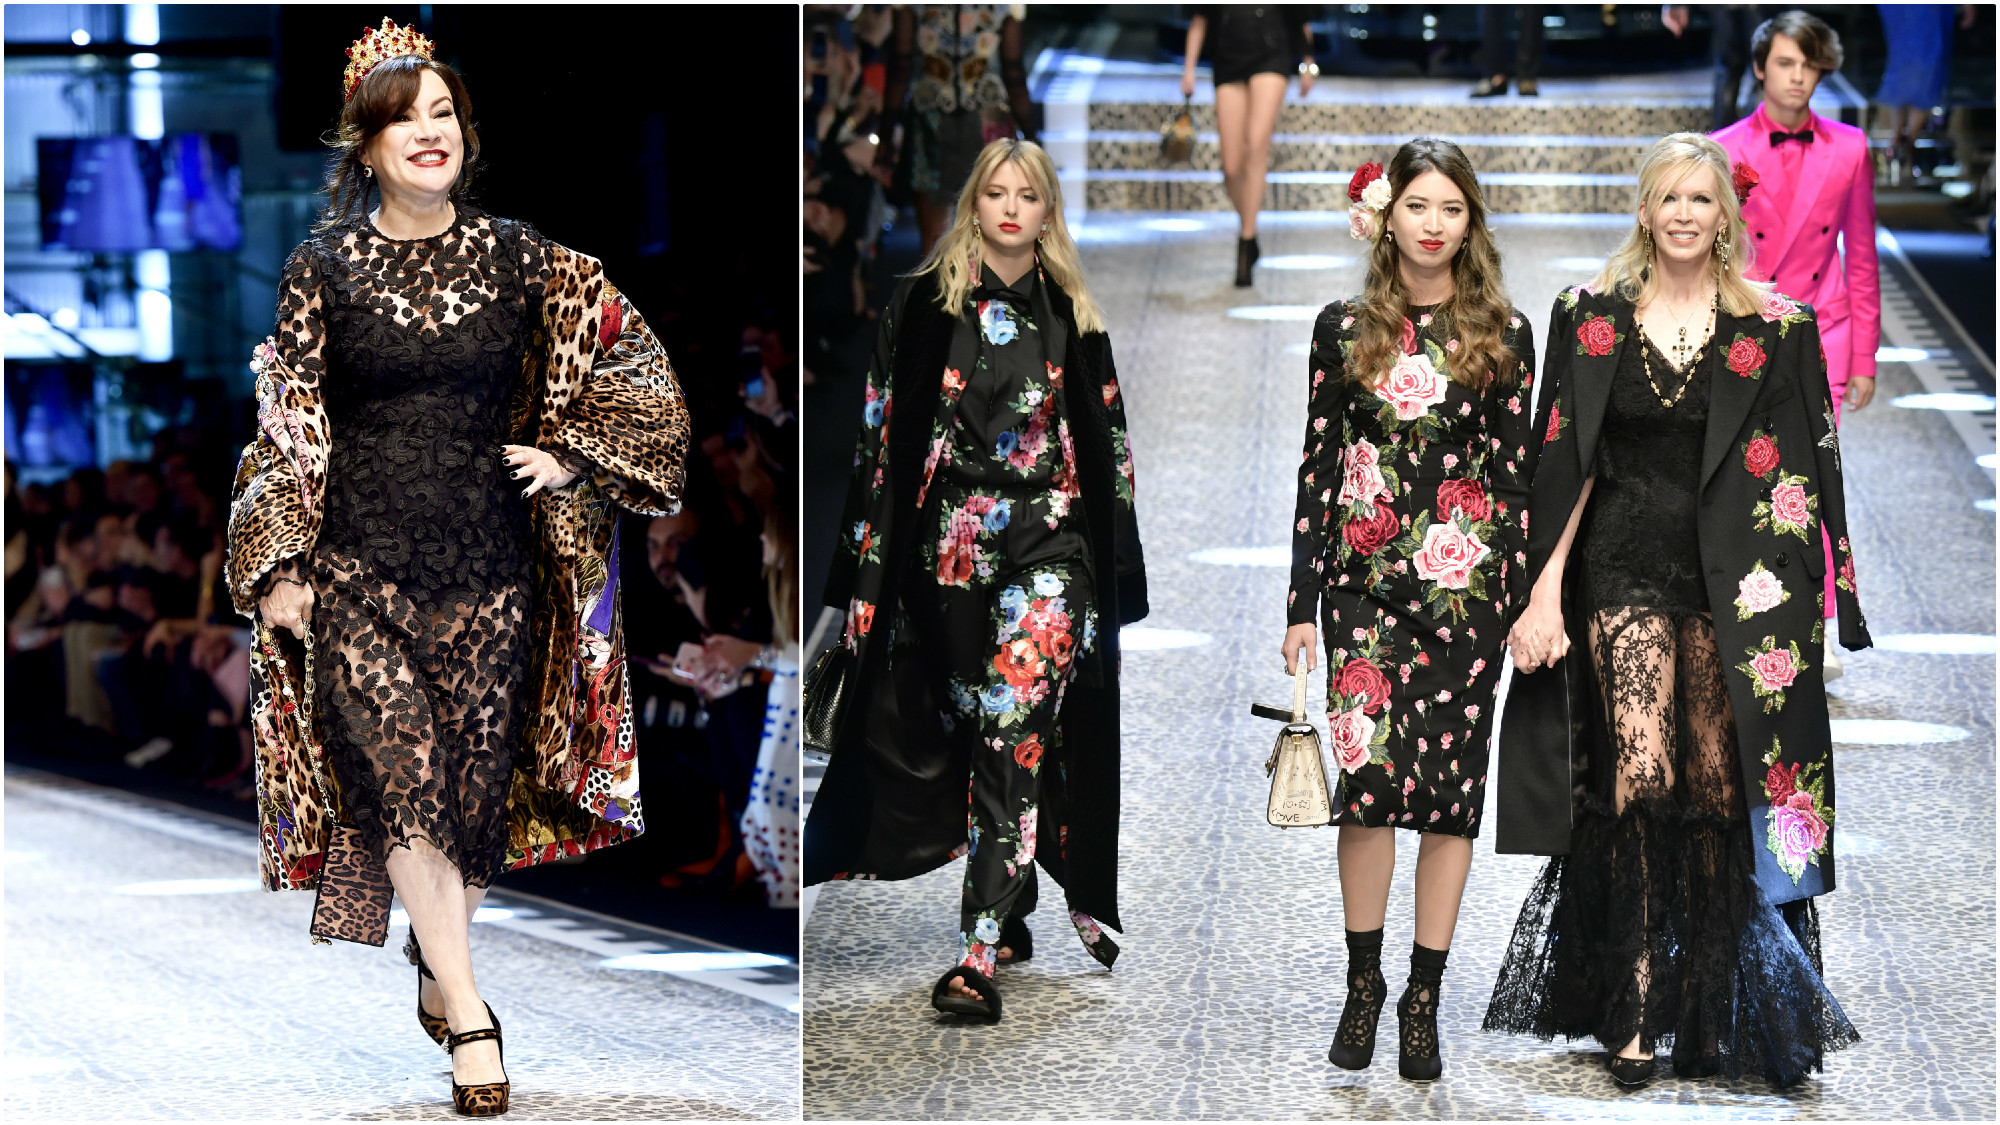 Jennifer Tilly walks the runway at the Dolce & Gabbana show on Feb. 26, 2017, during Milan Fashion Week; and at right, Isabel Getty, left, Alyssa Fung and Susan Casden also make a runway appearance at Dolce & Gabbana's February show.